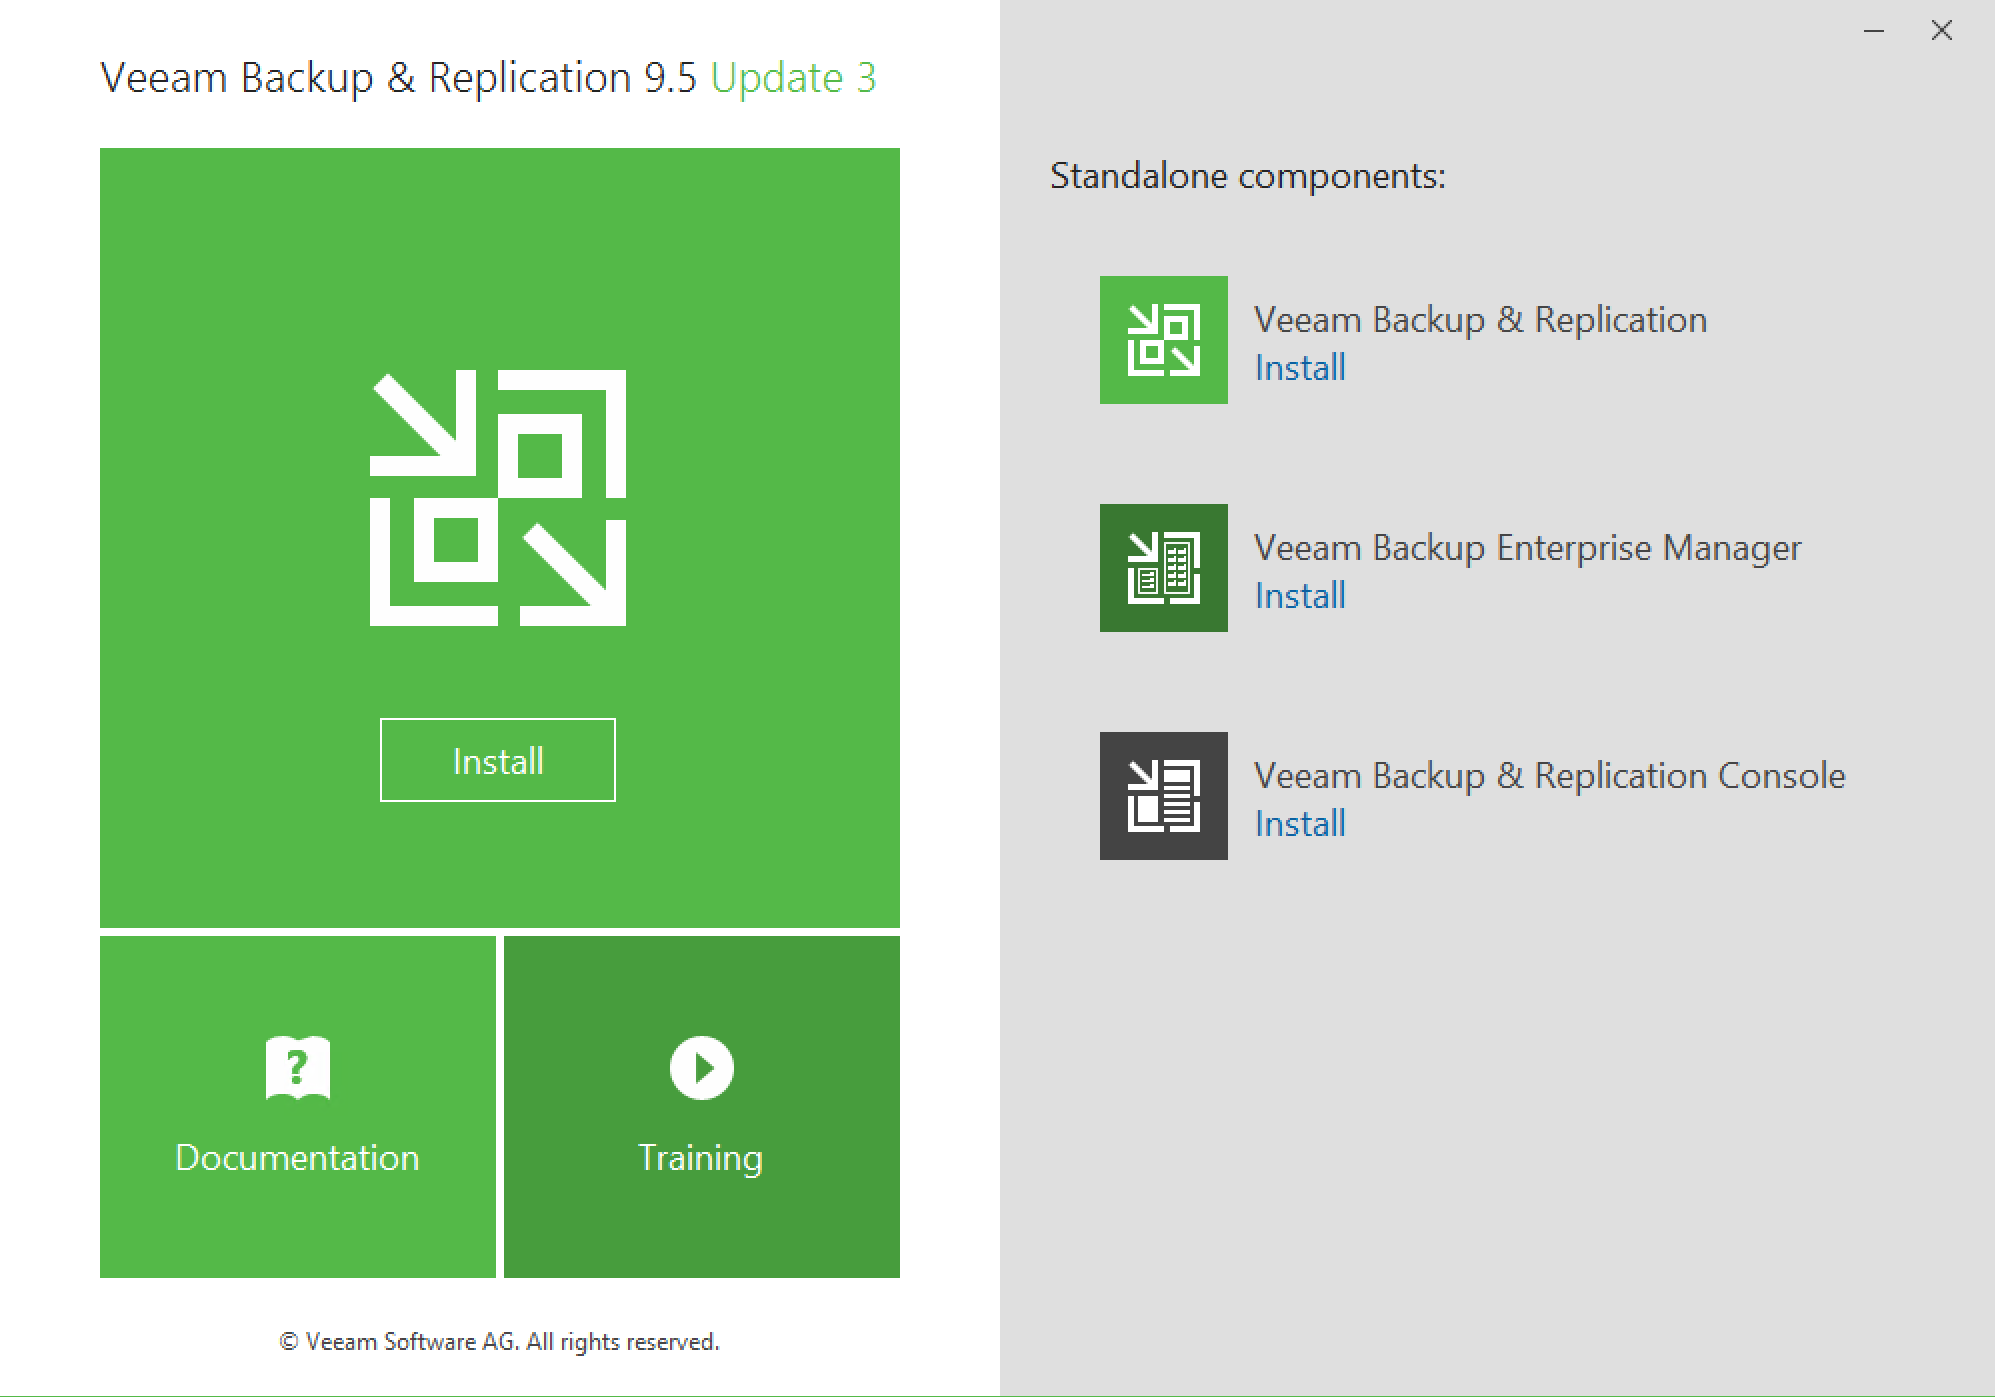 Launch Installation of Veeam